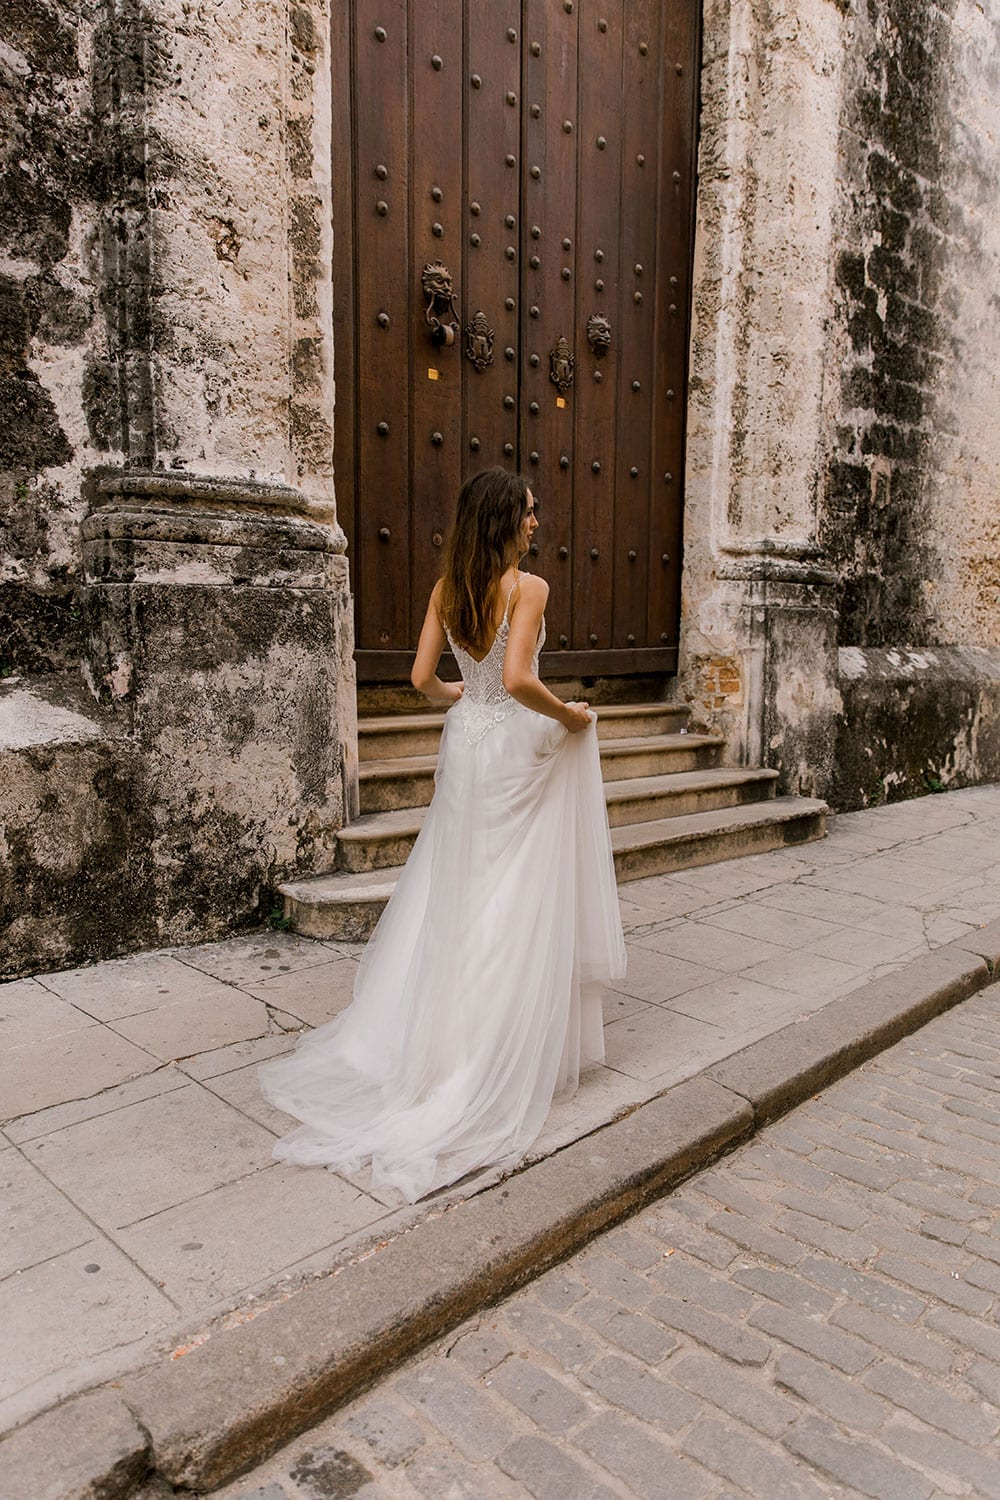 Model wearing Vinka Design Lucia Wedding Dress with Fitted Beaded Bodice, Tulle Skirt and Split walking in front of old building in Havana